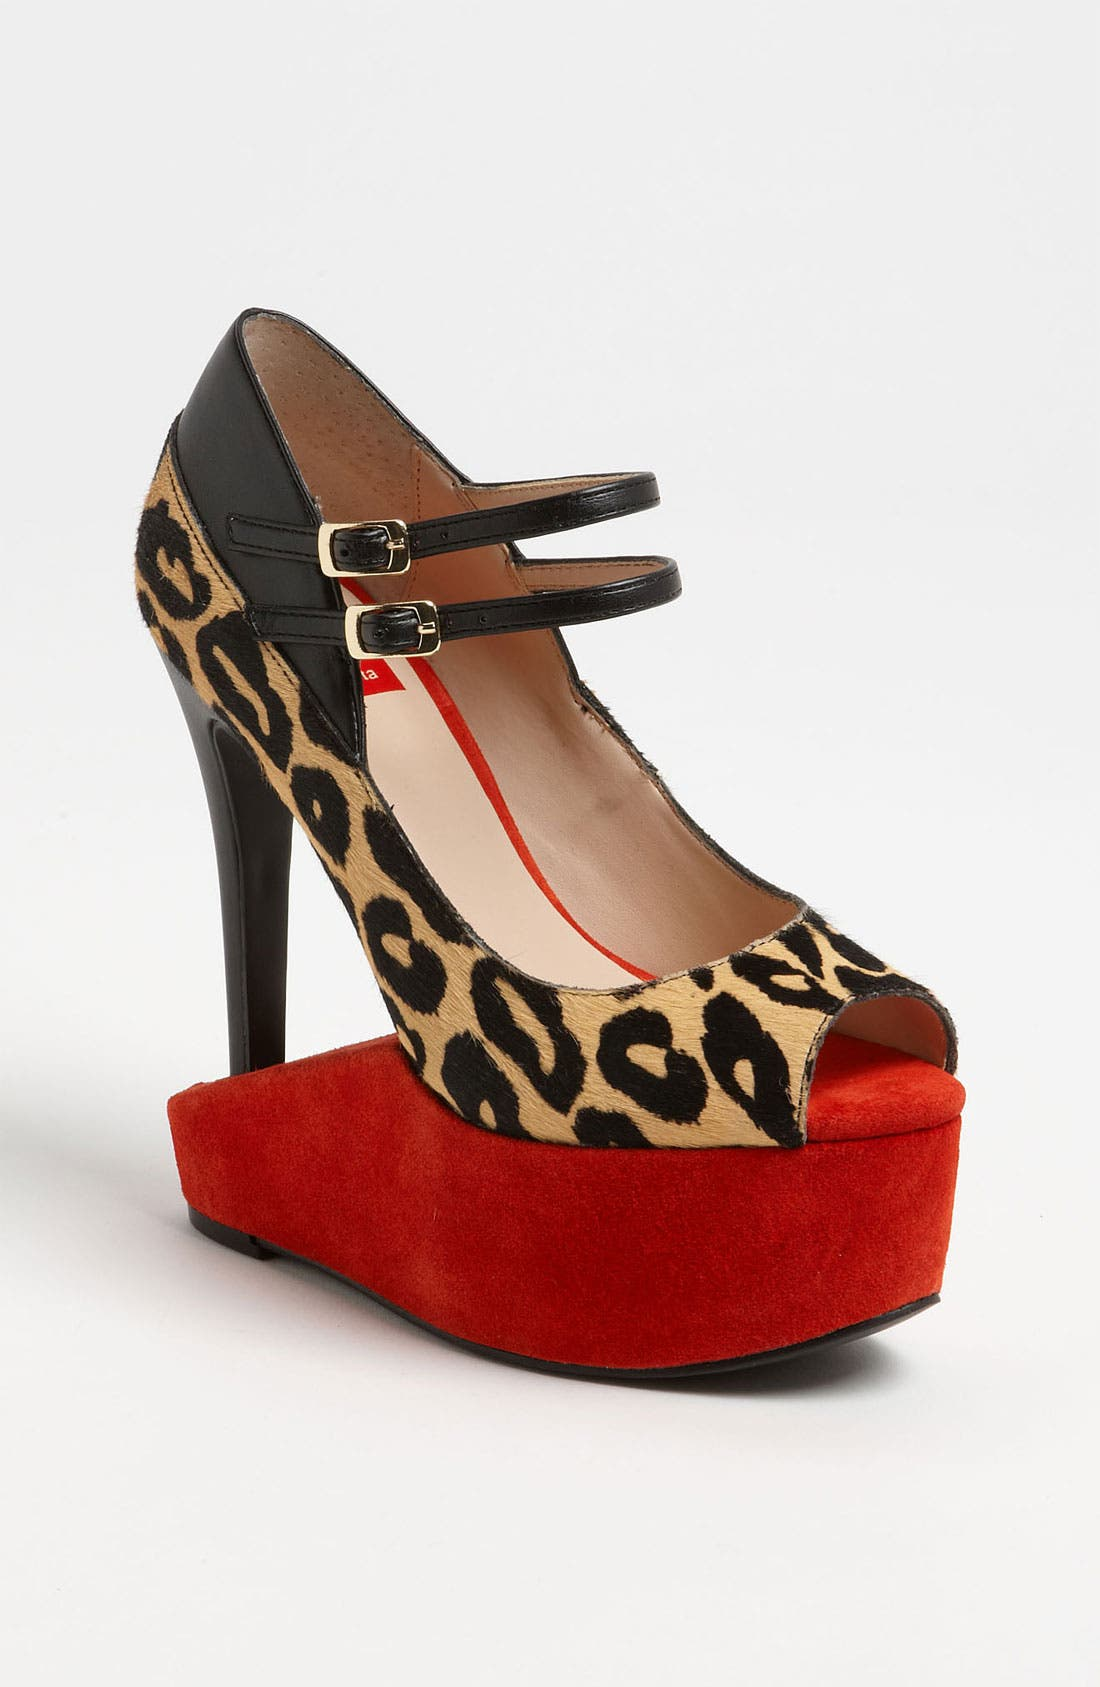 Alternate Image 1 Selected - DV8 by Dolce Vita 'Gypsie' Pump